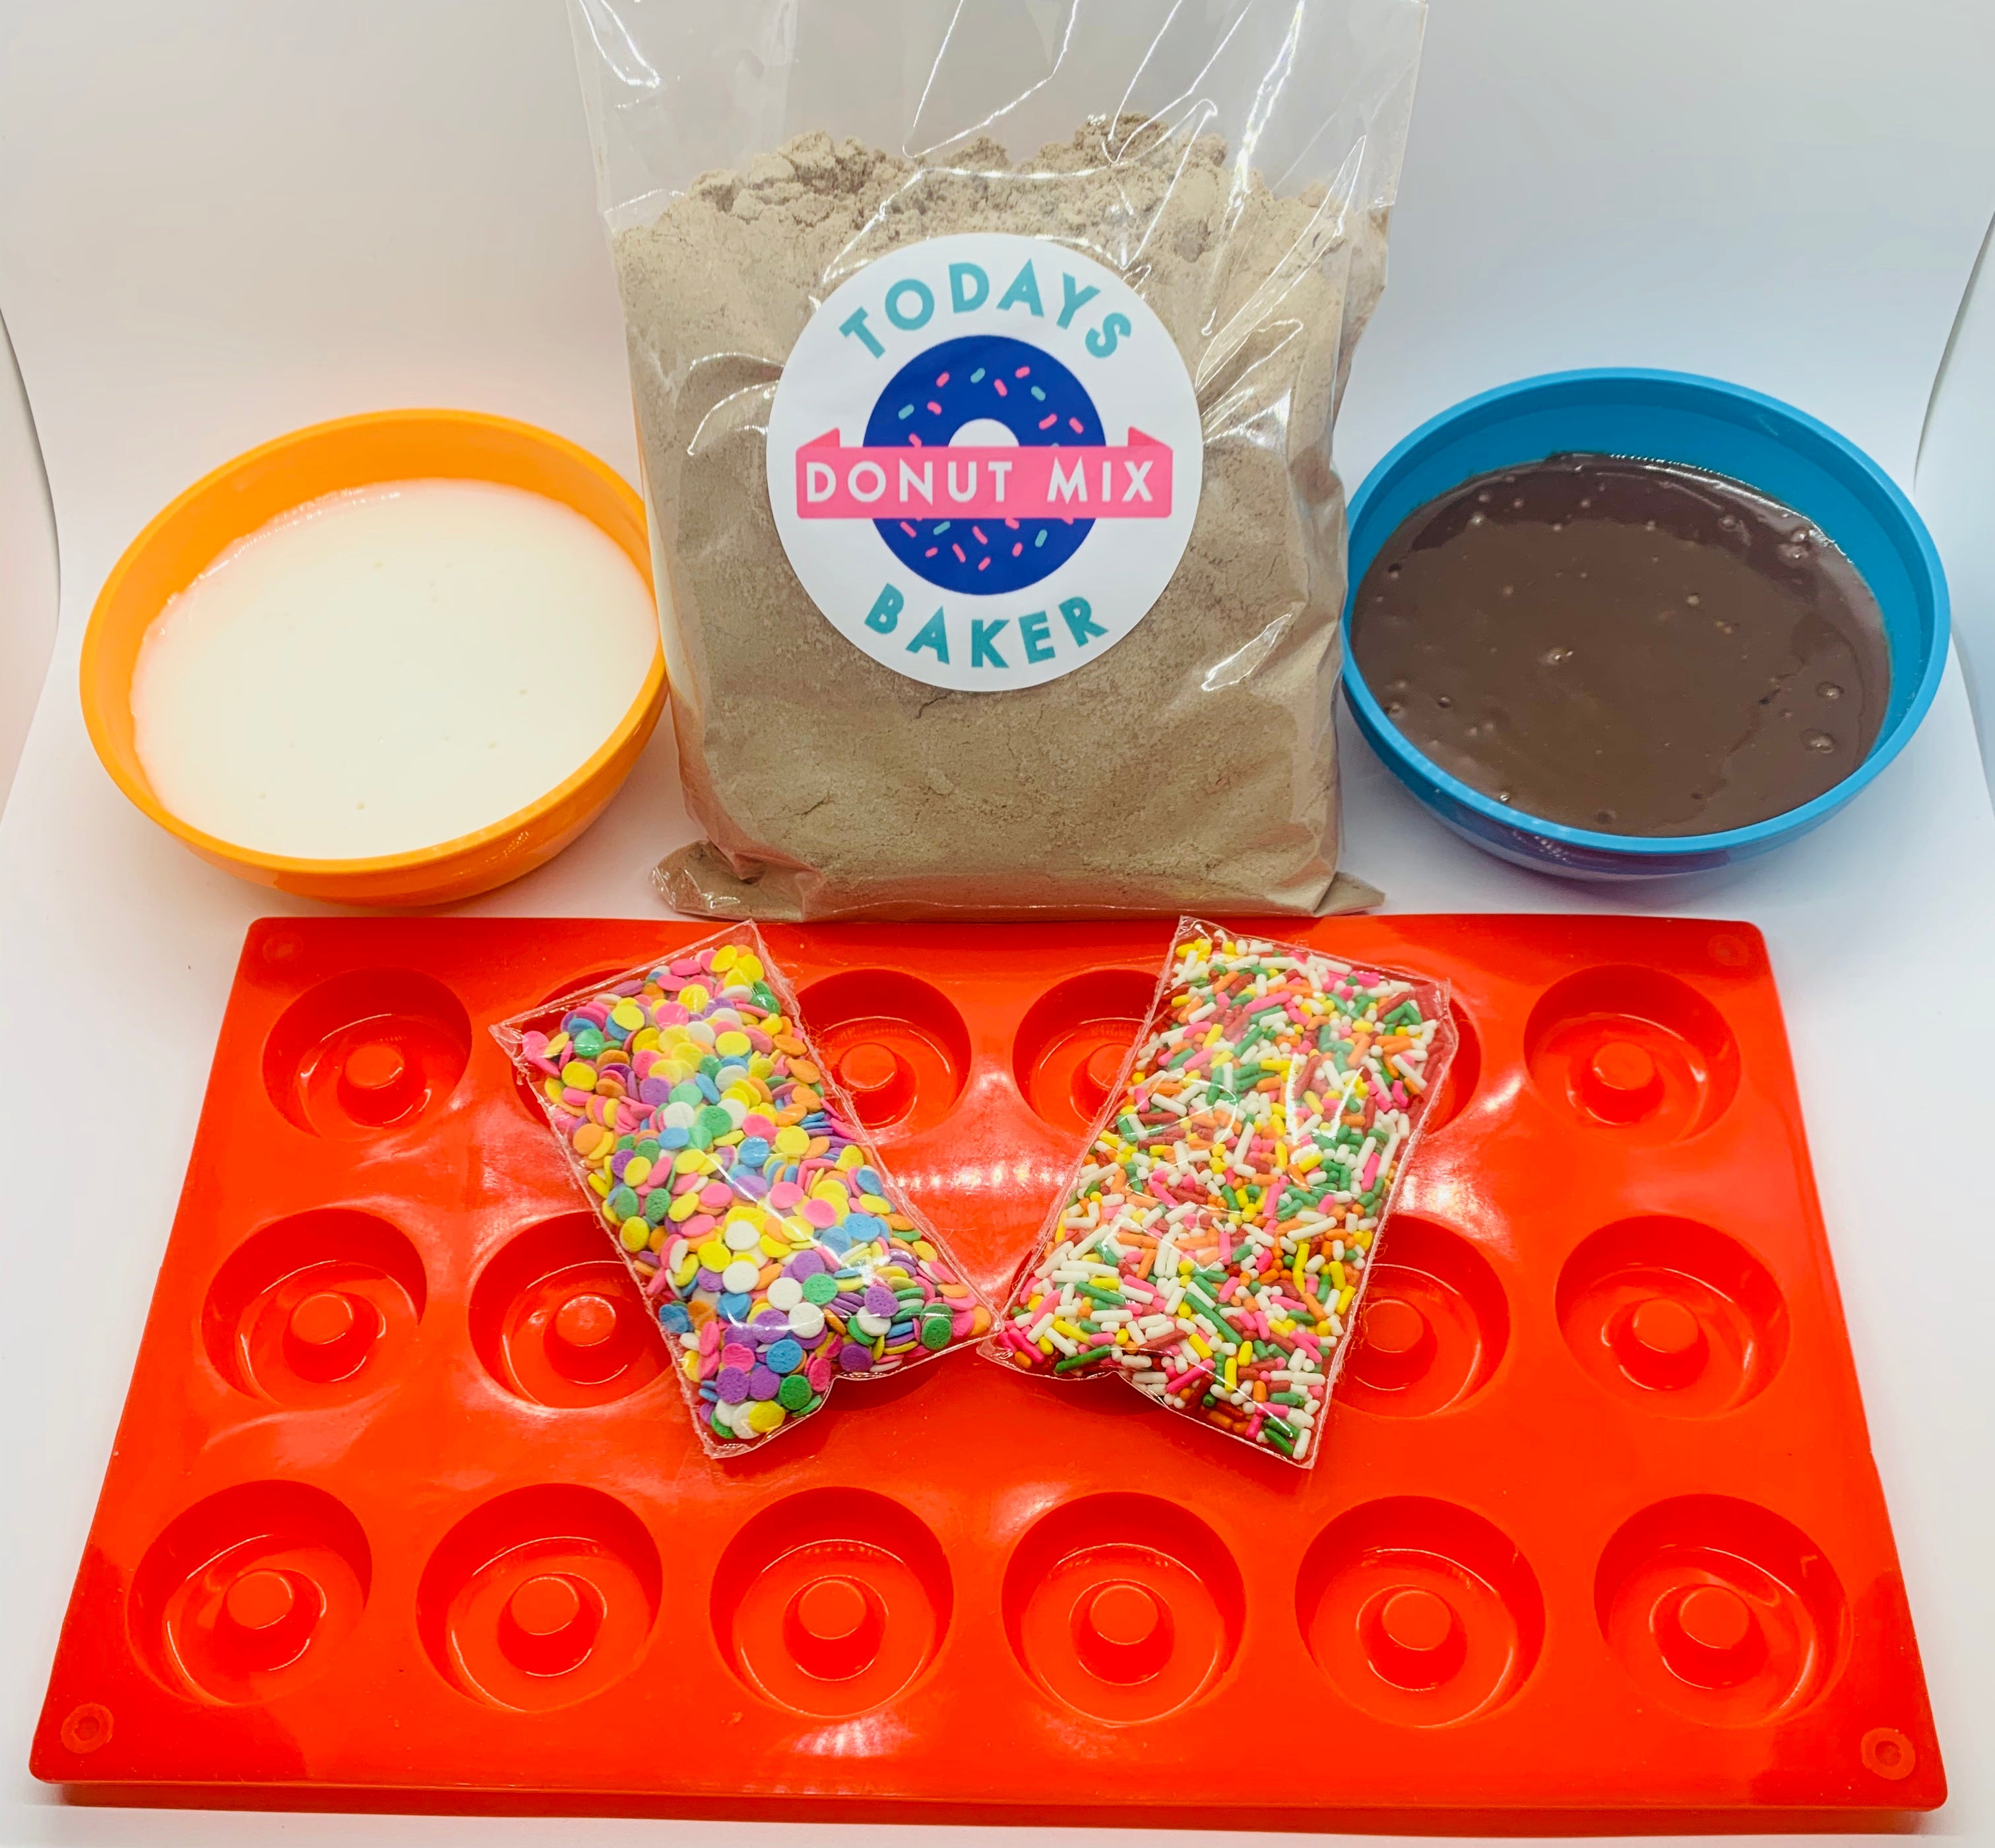 Chocolate Mini Cake Donut Kit - TODAYS BAKER